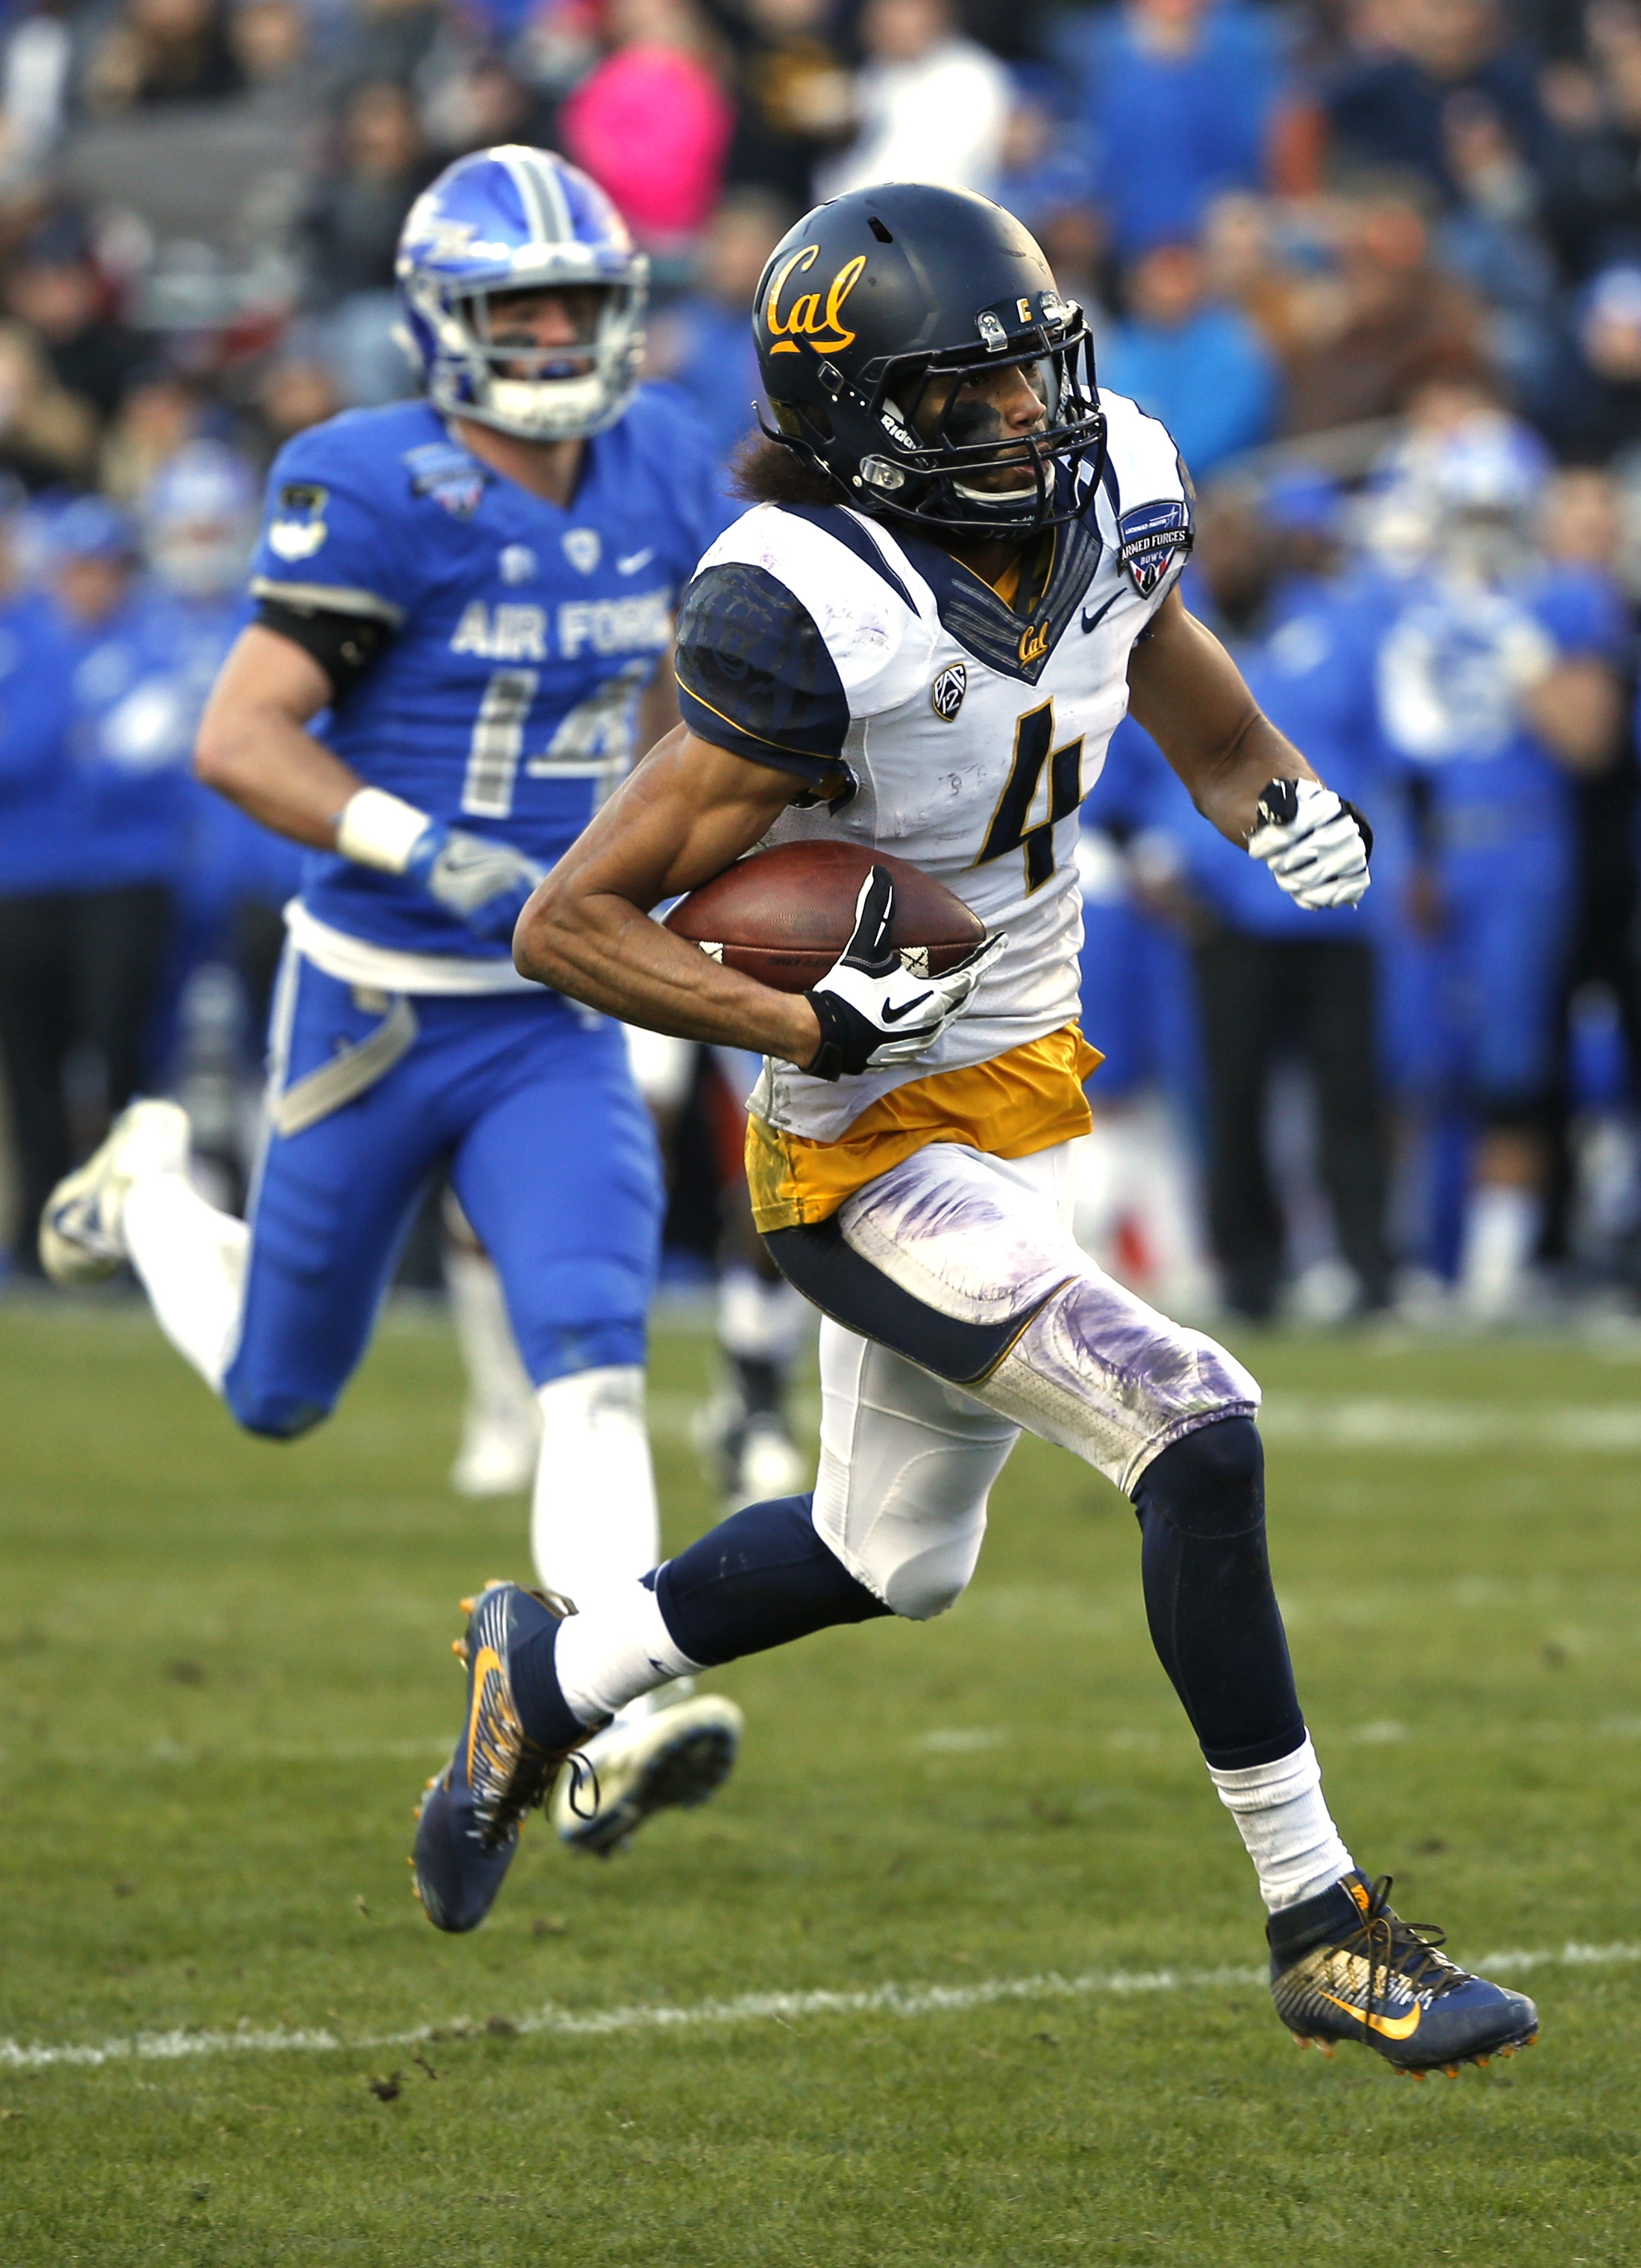 California wide receiver Kenny Lawler (4) takes the ball in for a touchdown against Air Force defensive back Hayes Linn (14) during the second half of the Armed Forces Bowl NCAA college football game, Tuesday, Dec. 29, 2015, in Fort Worth, Texas. Californ